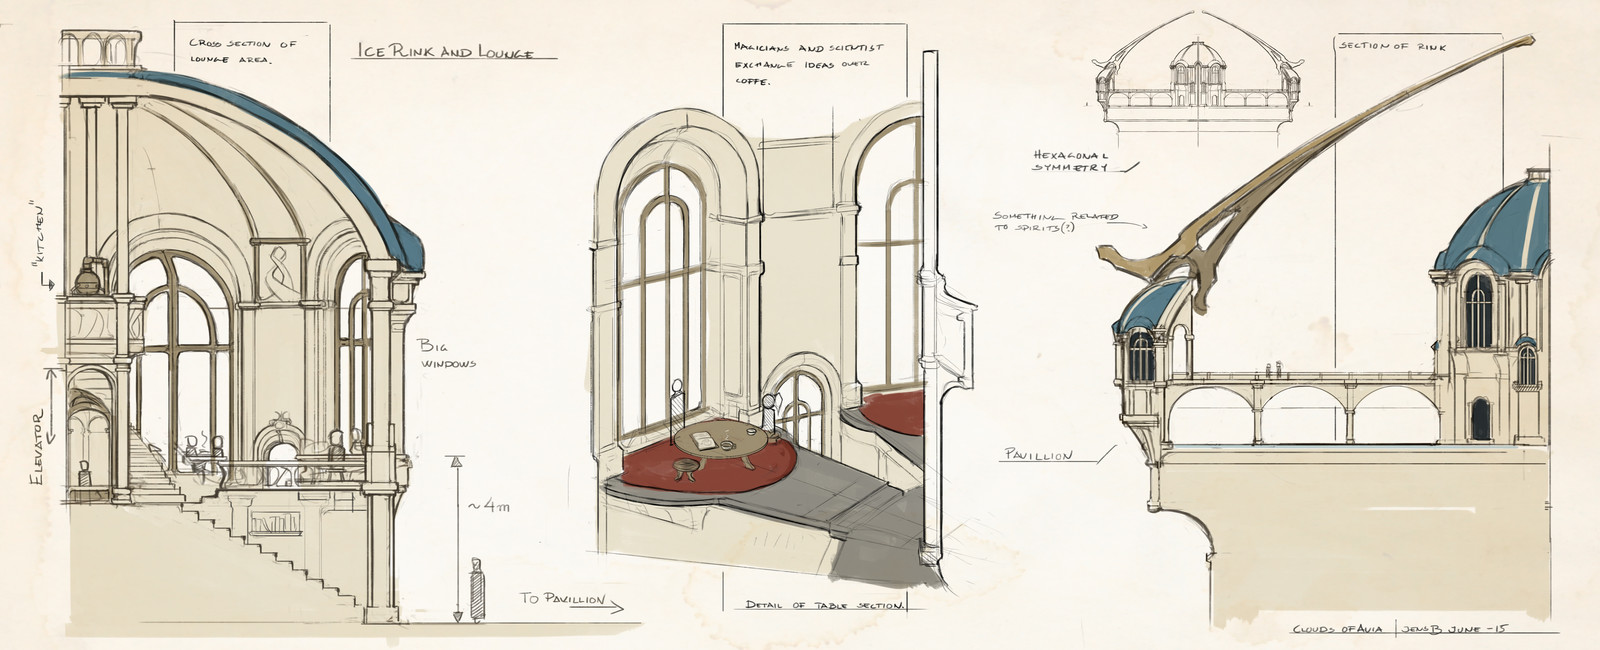 Design of cross sections of the tower.